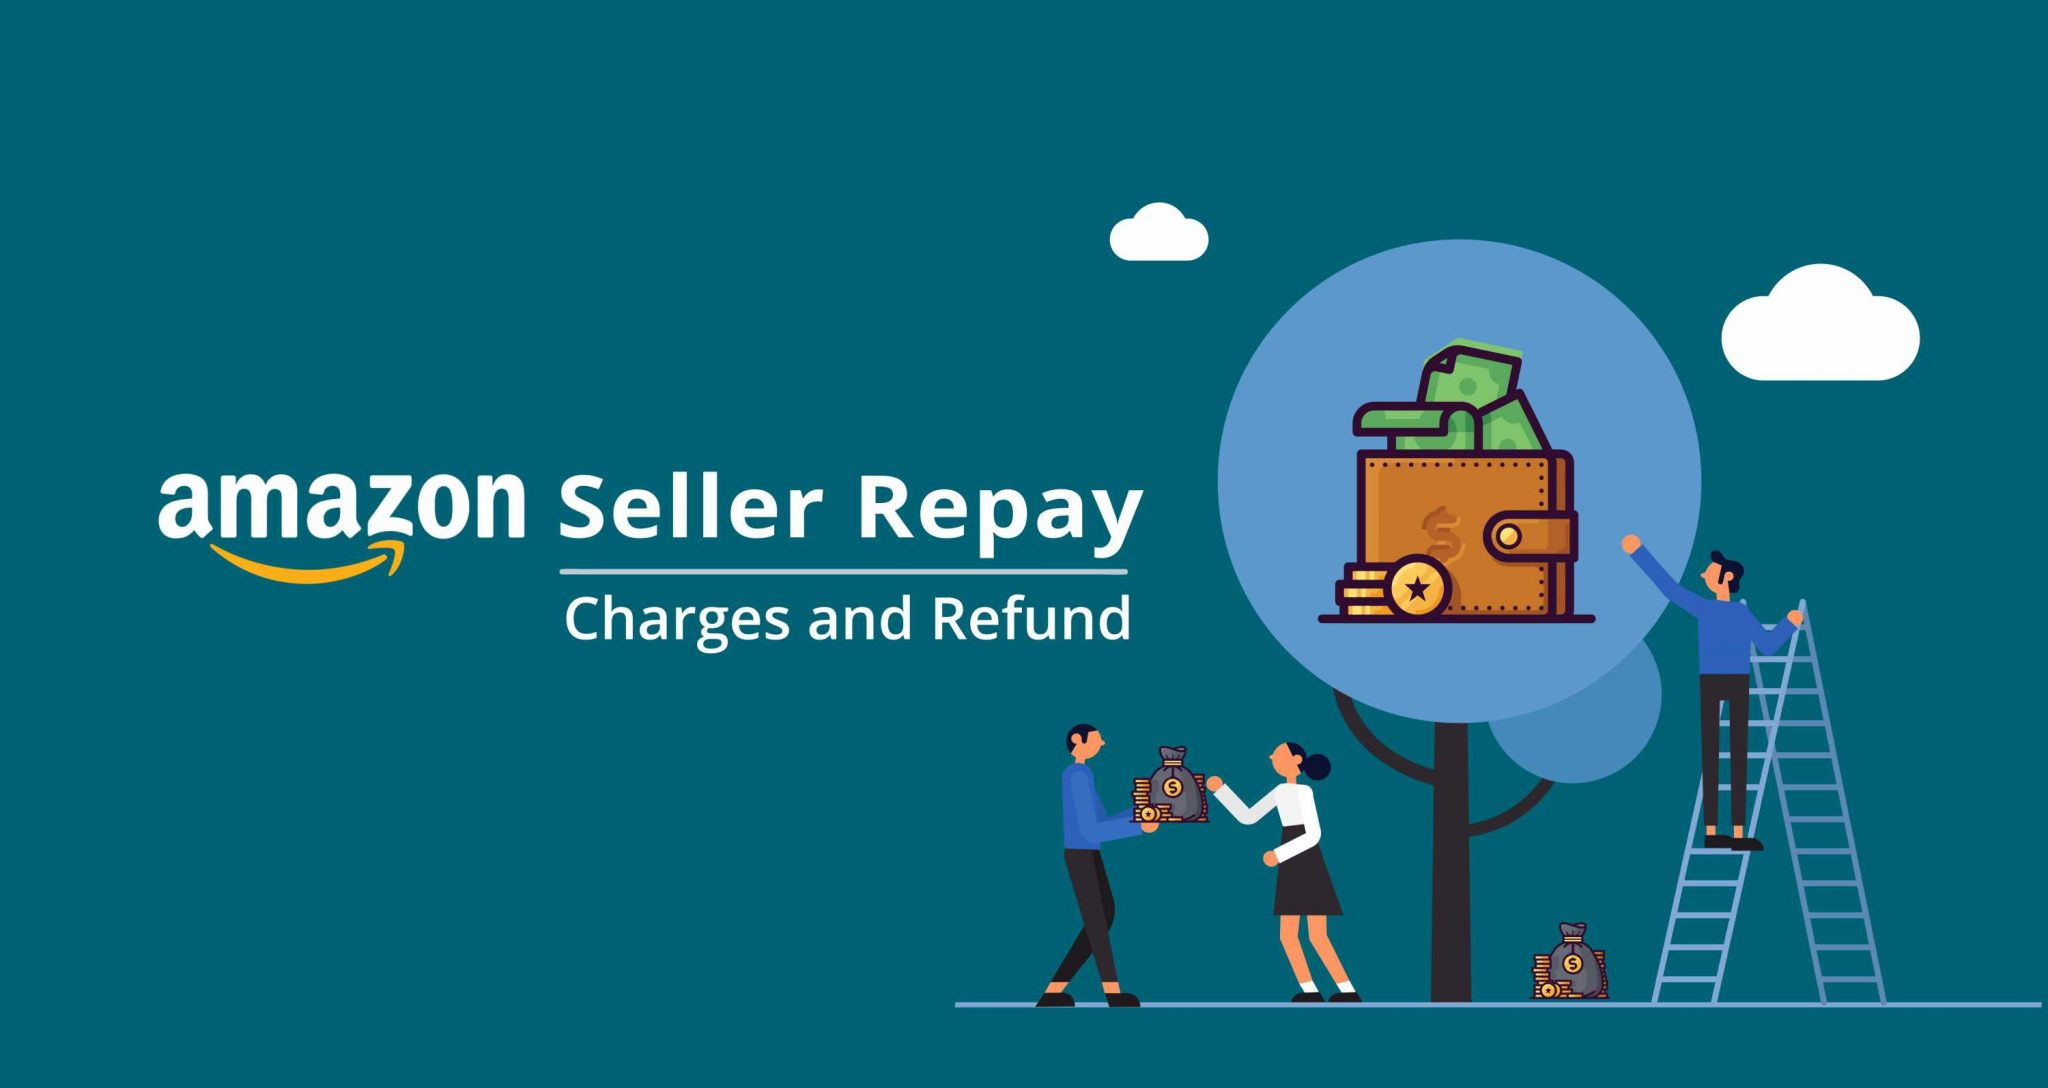 Amazon Seller Repay: Charges, Customer Service, and Refund Explained